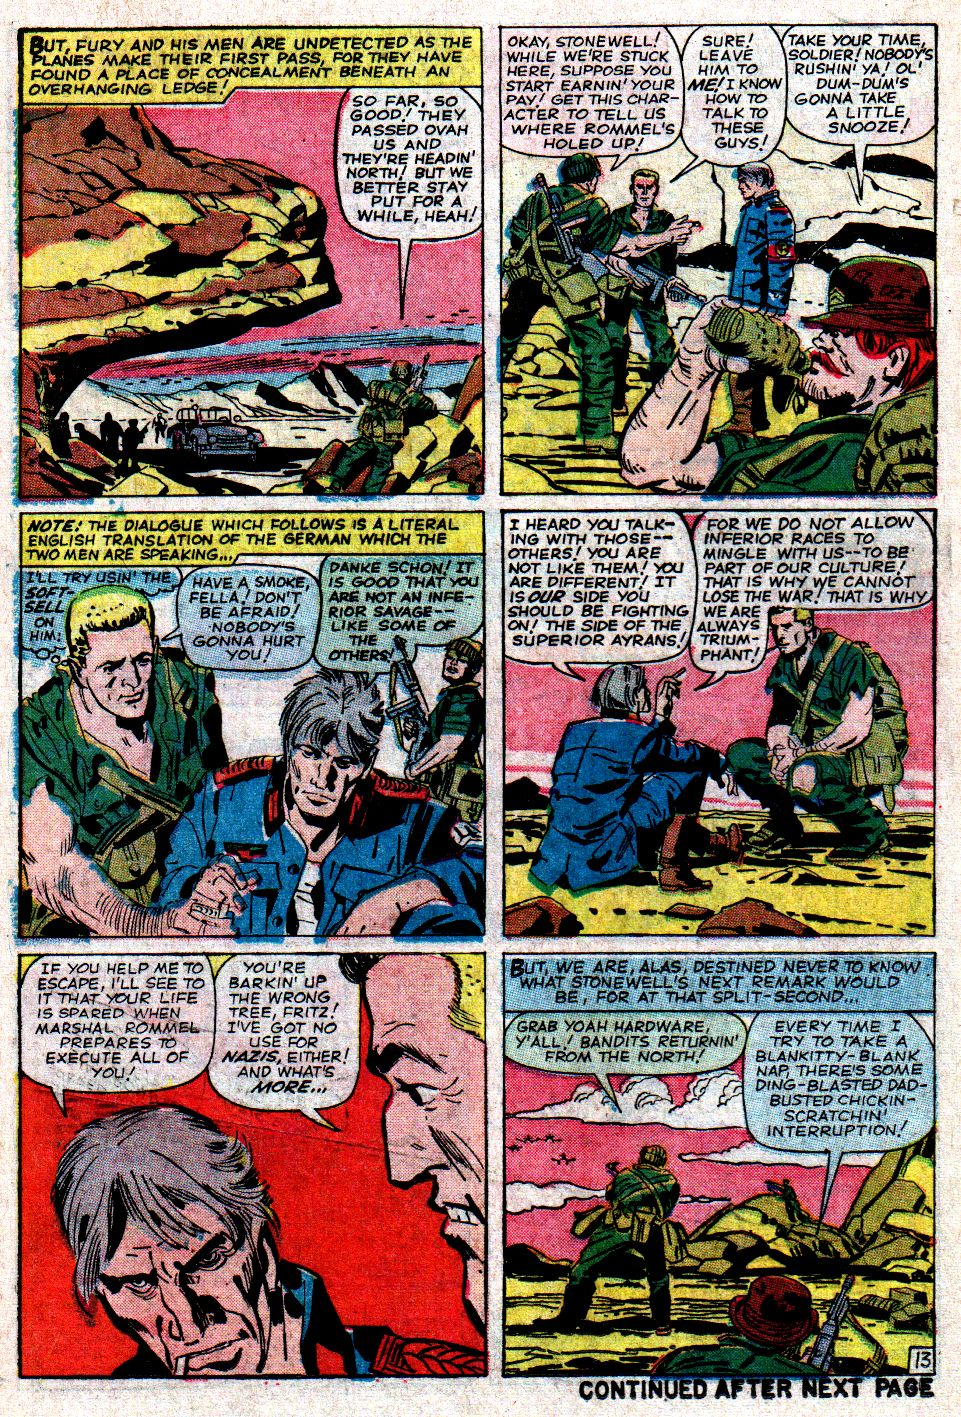 Read online Sgt. Fury comic -  Issue #6 - 18